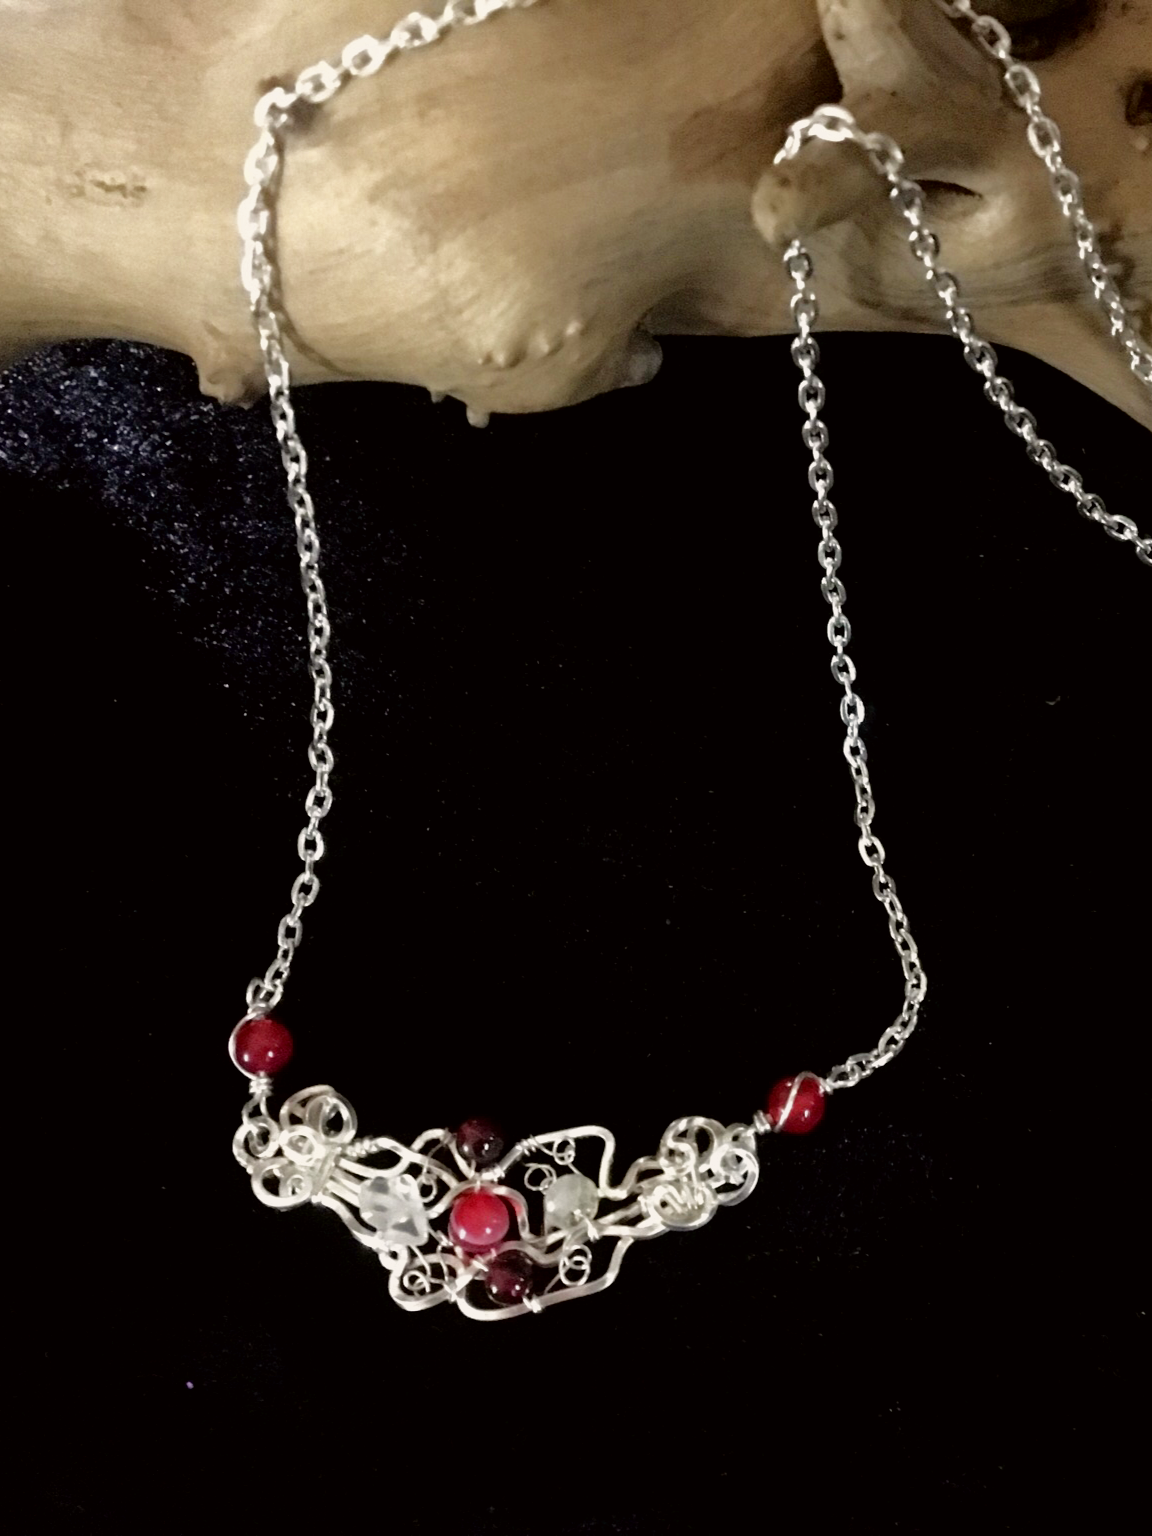 Qhresnna Quartz Necklace - Red Agathe and granate - Silver Plated